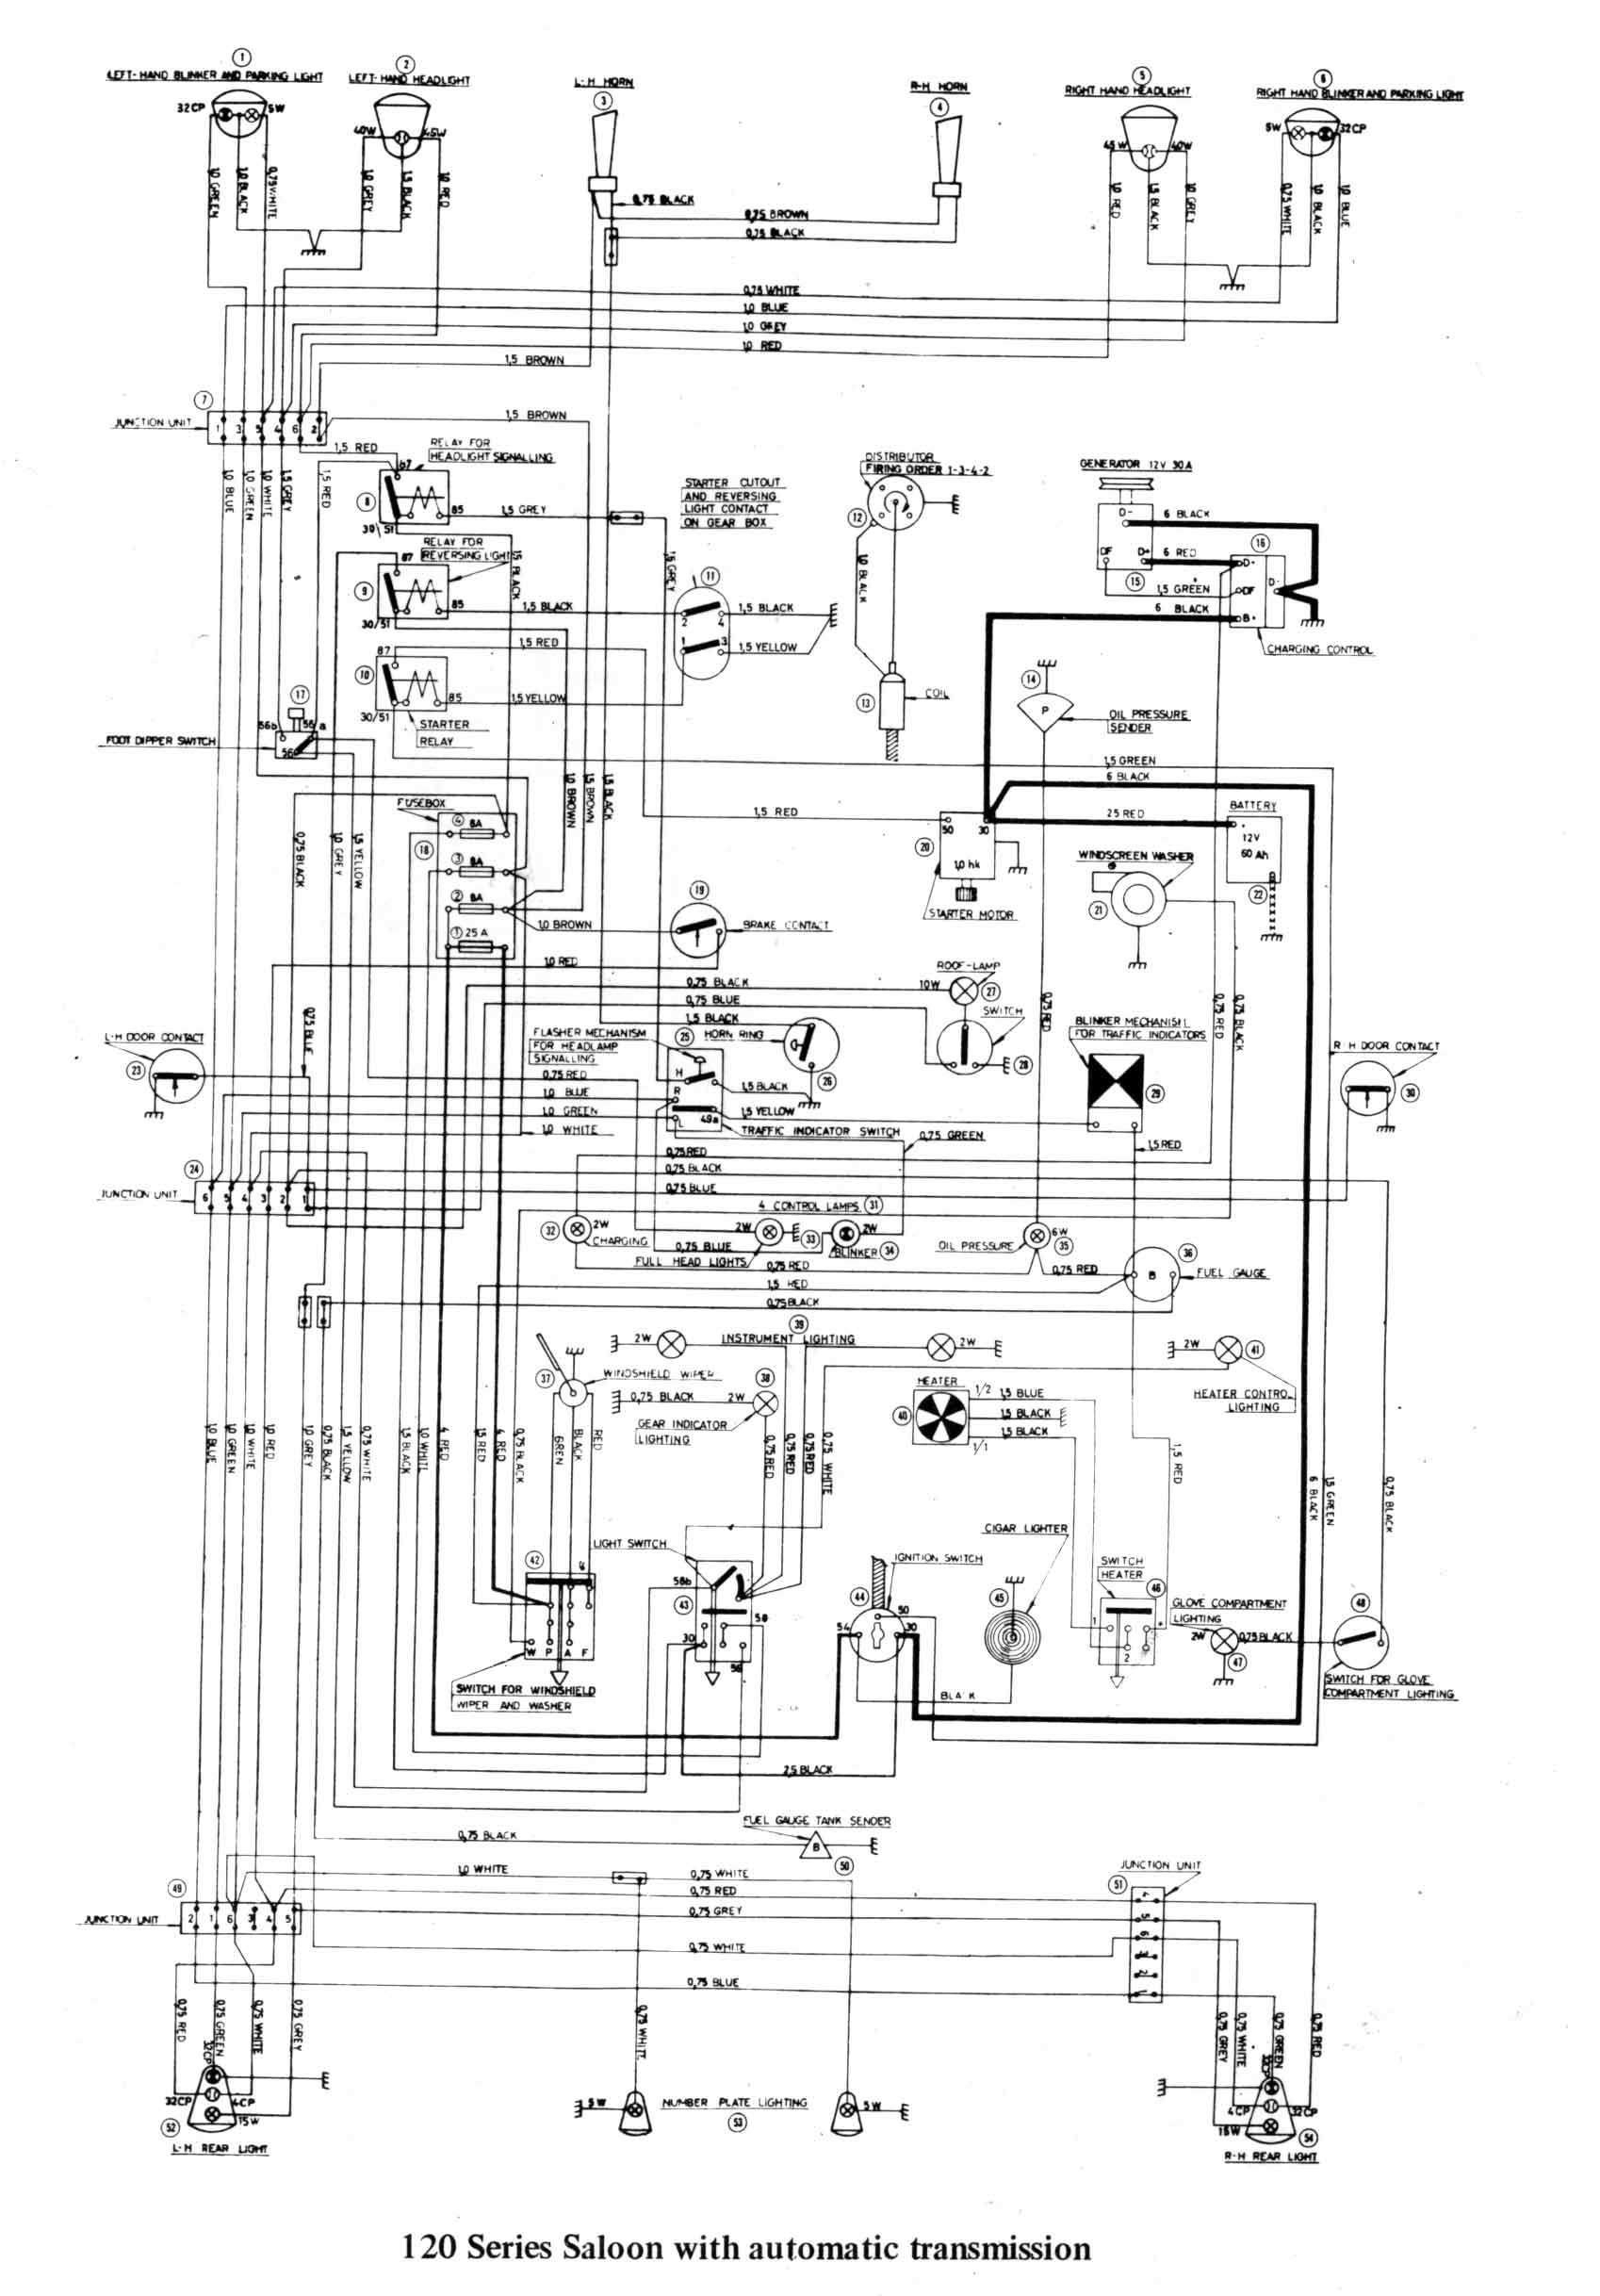 Elevator Schematics Schematic Diagram Joystick Explained Wiring Diagrams Dmdelectro Co Xenon 1698x2436